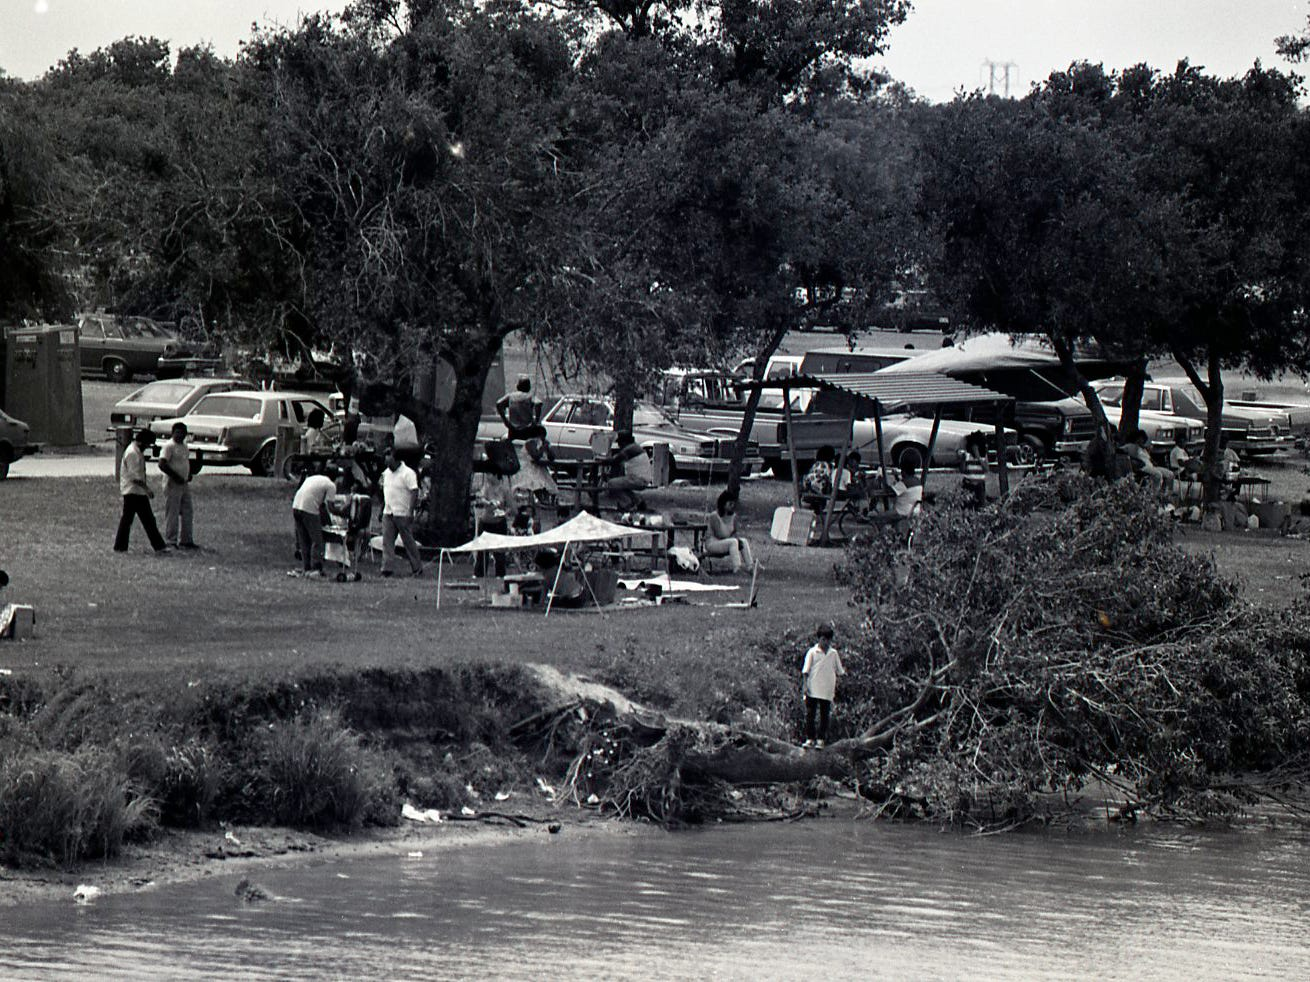 People enjoyed camping on Easter Sunday at Nueces River Park in Corpus Christi on April 19, 1987.